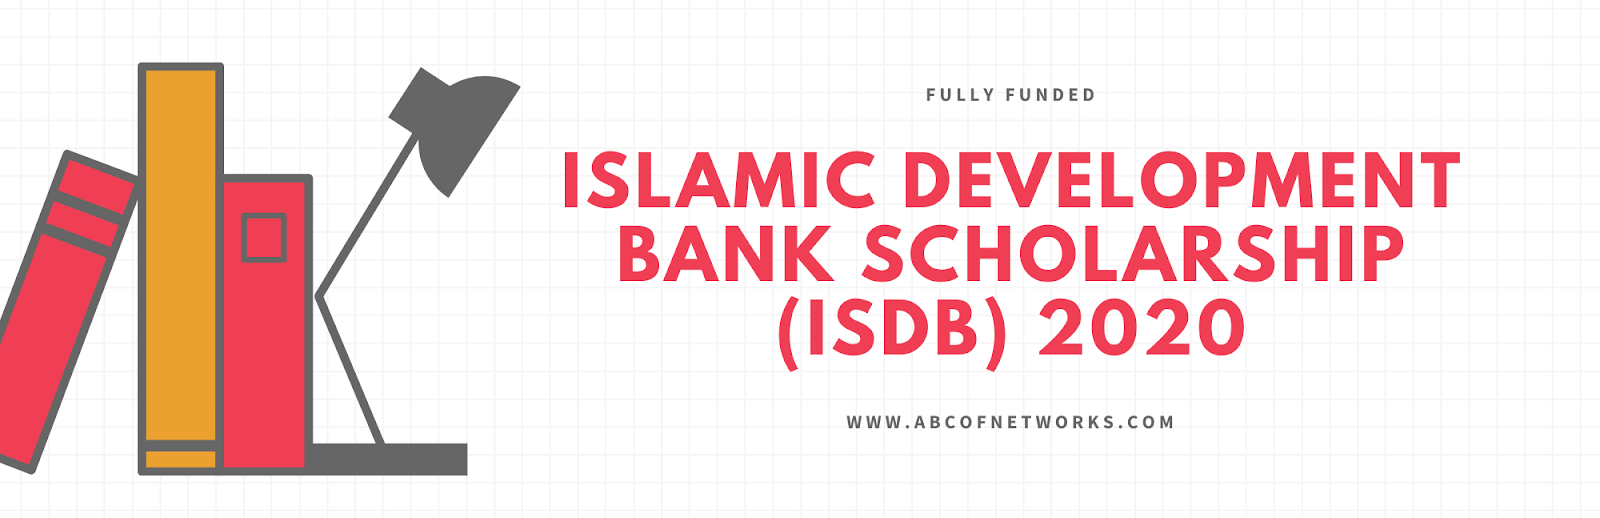 Islamic Development Bank Scholarship (IsDB) 2020